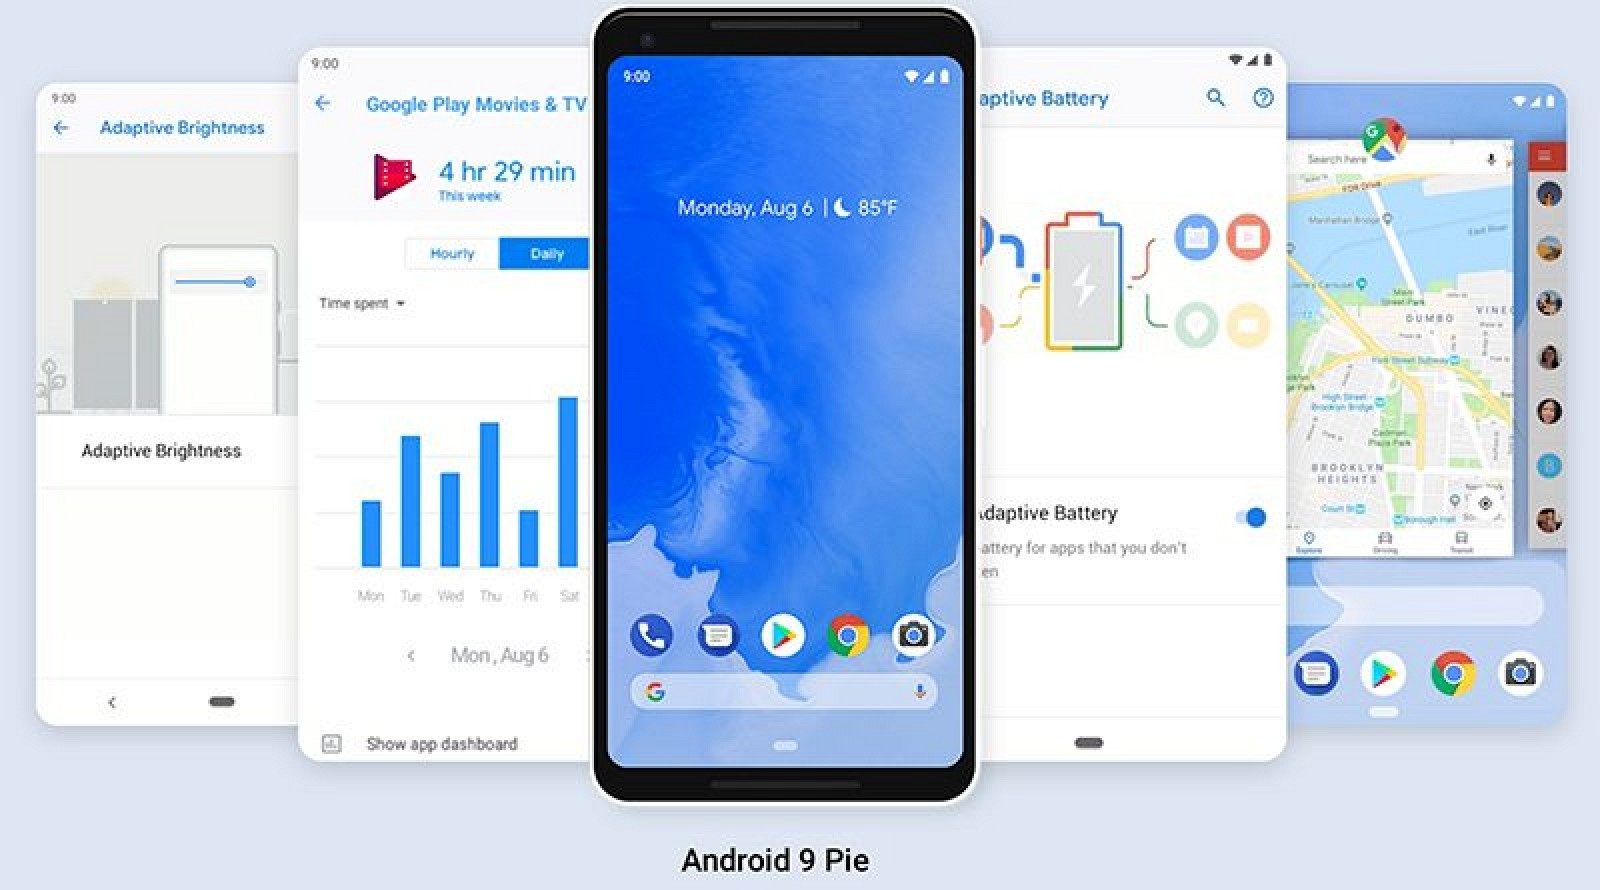 photo image Google Releases Android 9 Pie as Previous Oreo Release is Installed on Just 12% of Devices